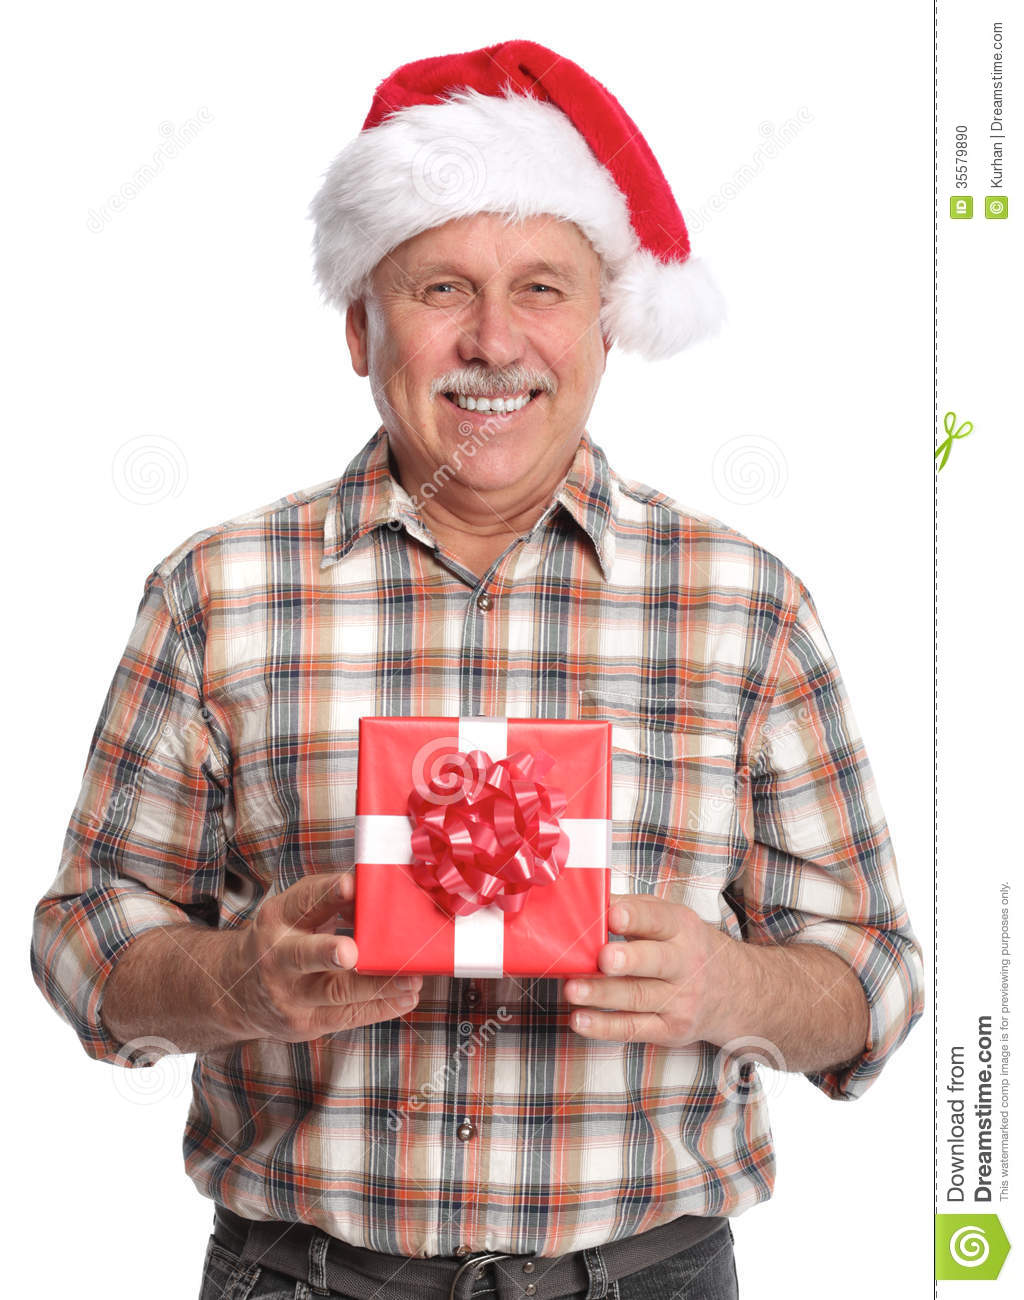 Happy Christmas Man With Xmas Gift. Stock Photo - Image: 35579890